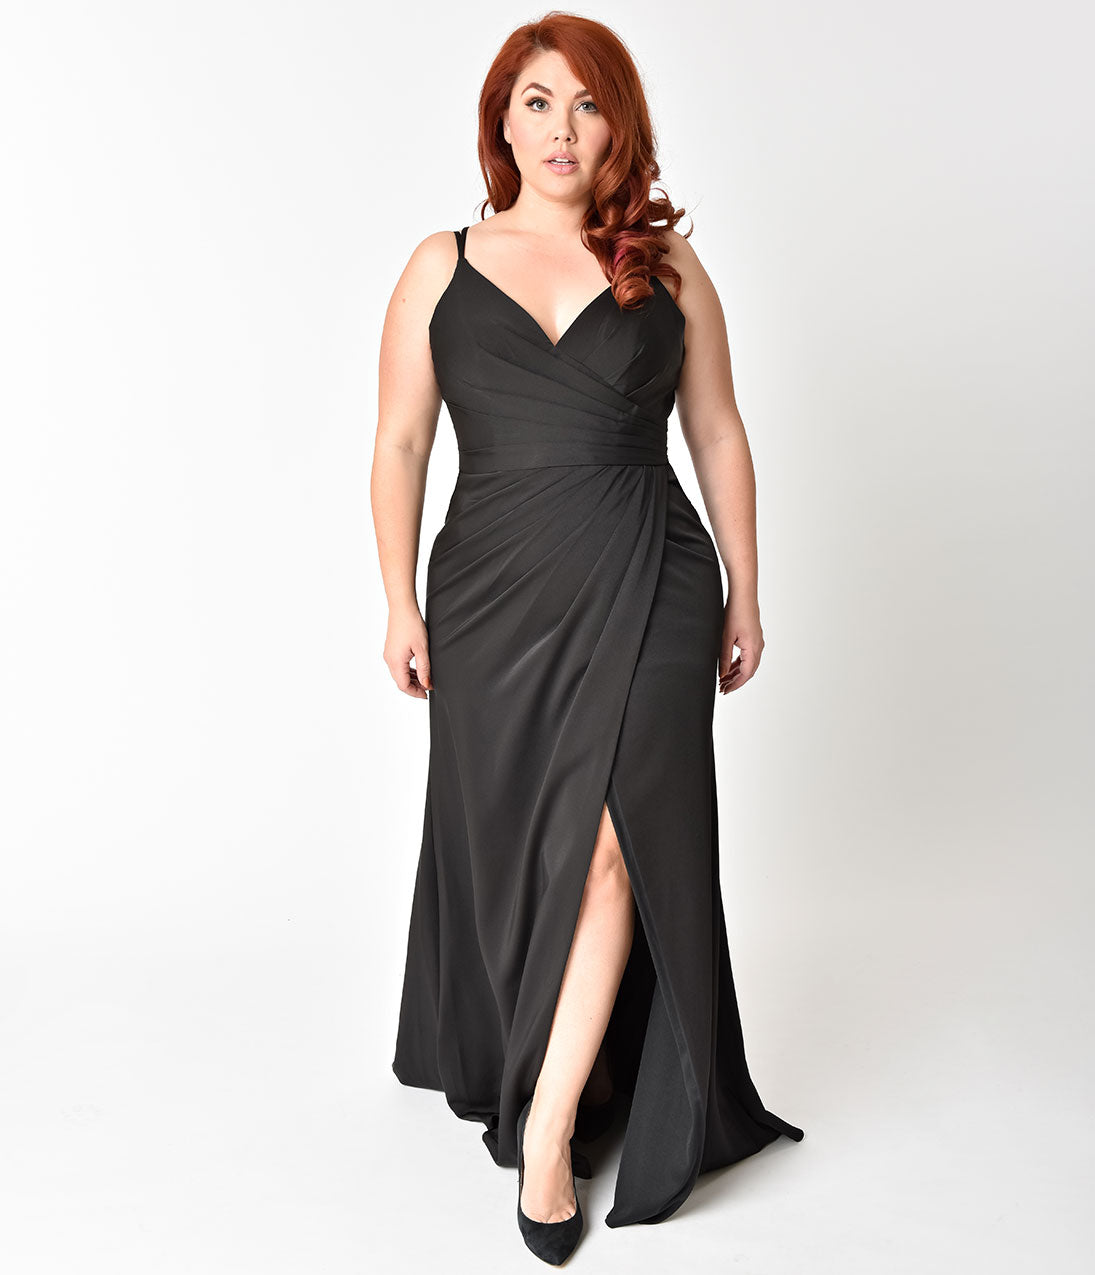 1950s Formal Dresses & Evening Gowns to Buy Plus Size Black Sexy Pleated Long Dress $118.00 AT vintagedancer.com